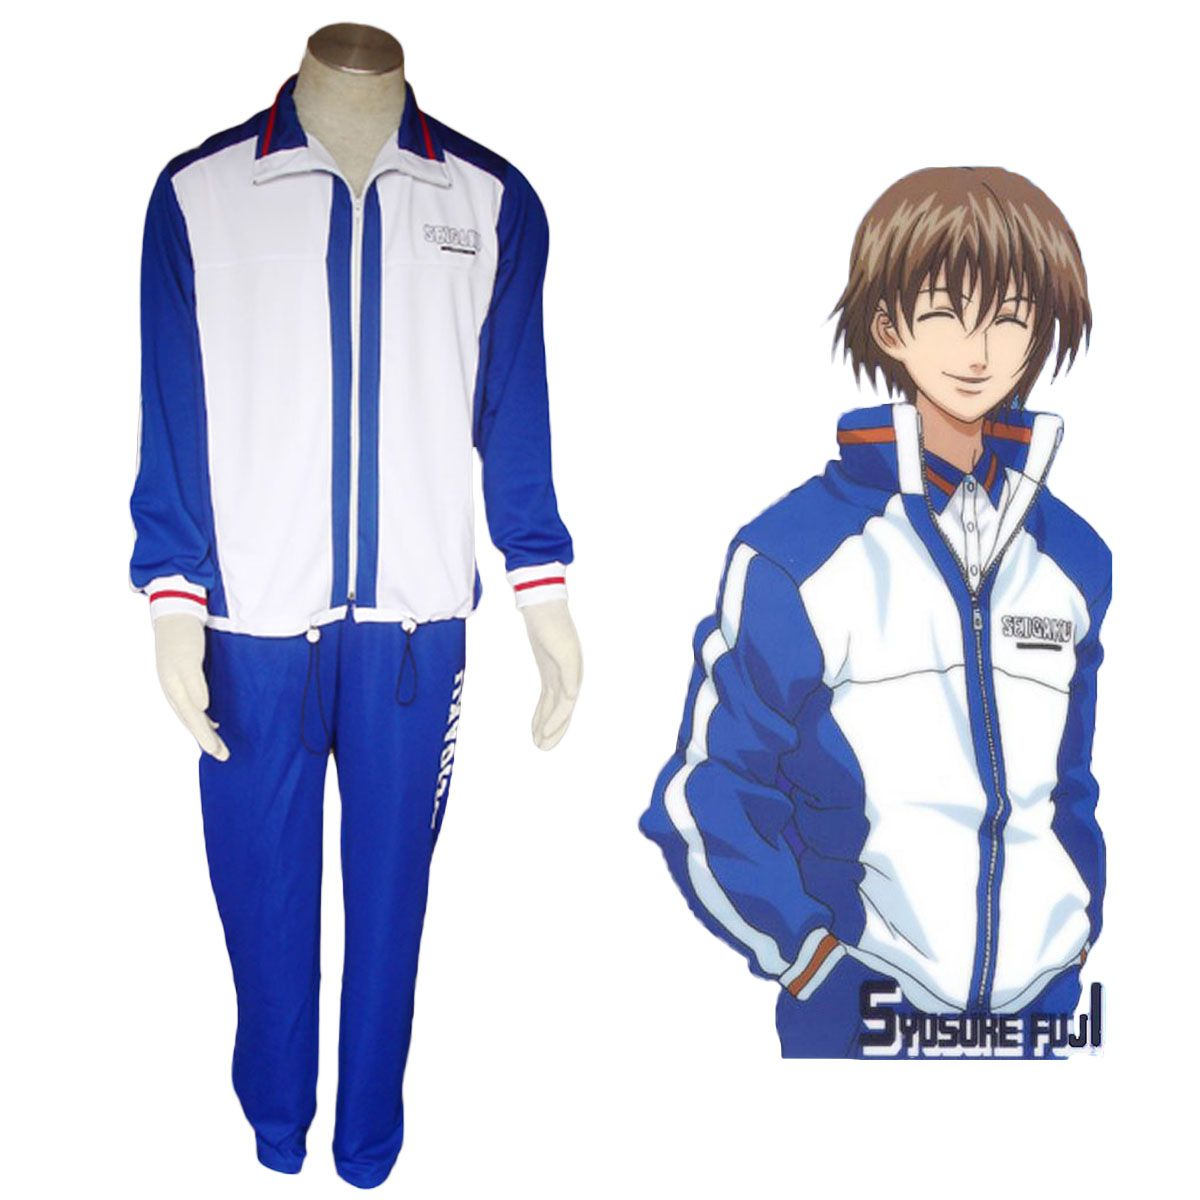 Deluxe The Prince of Tennis Youth Academy Winter Uniforms Cosplay Costumes